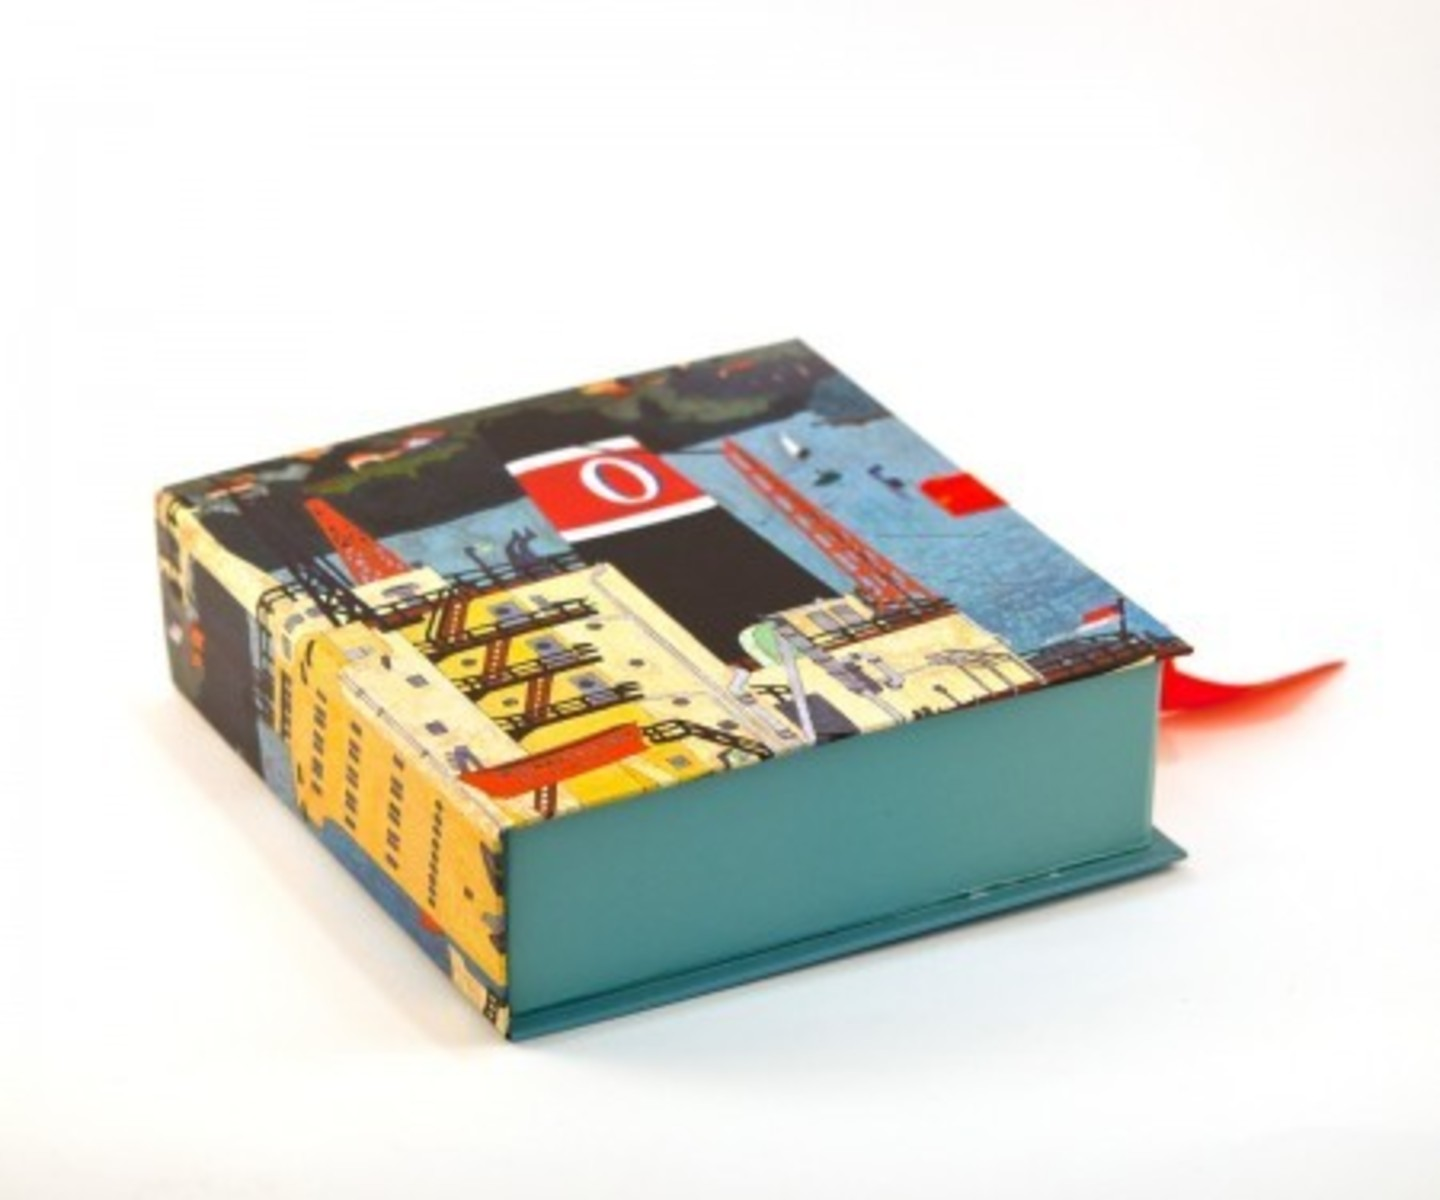 Harbour Boxed Set of Cards